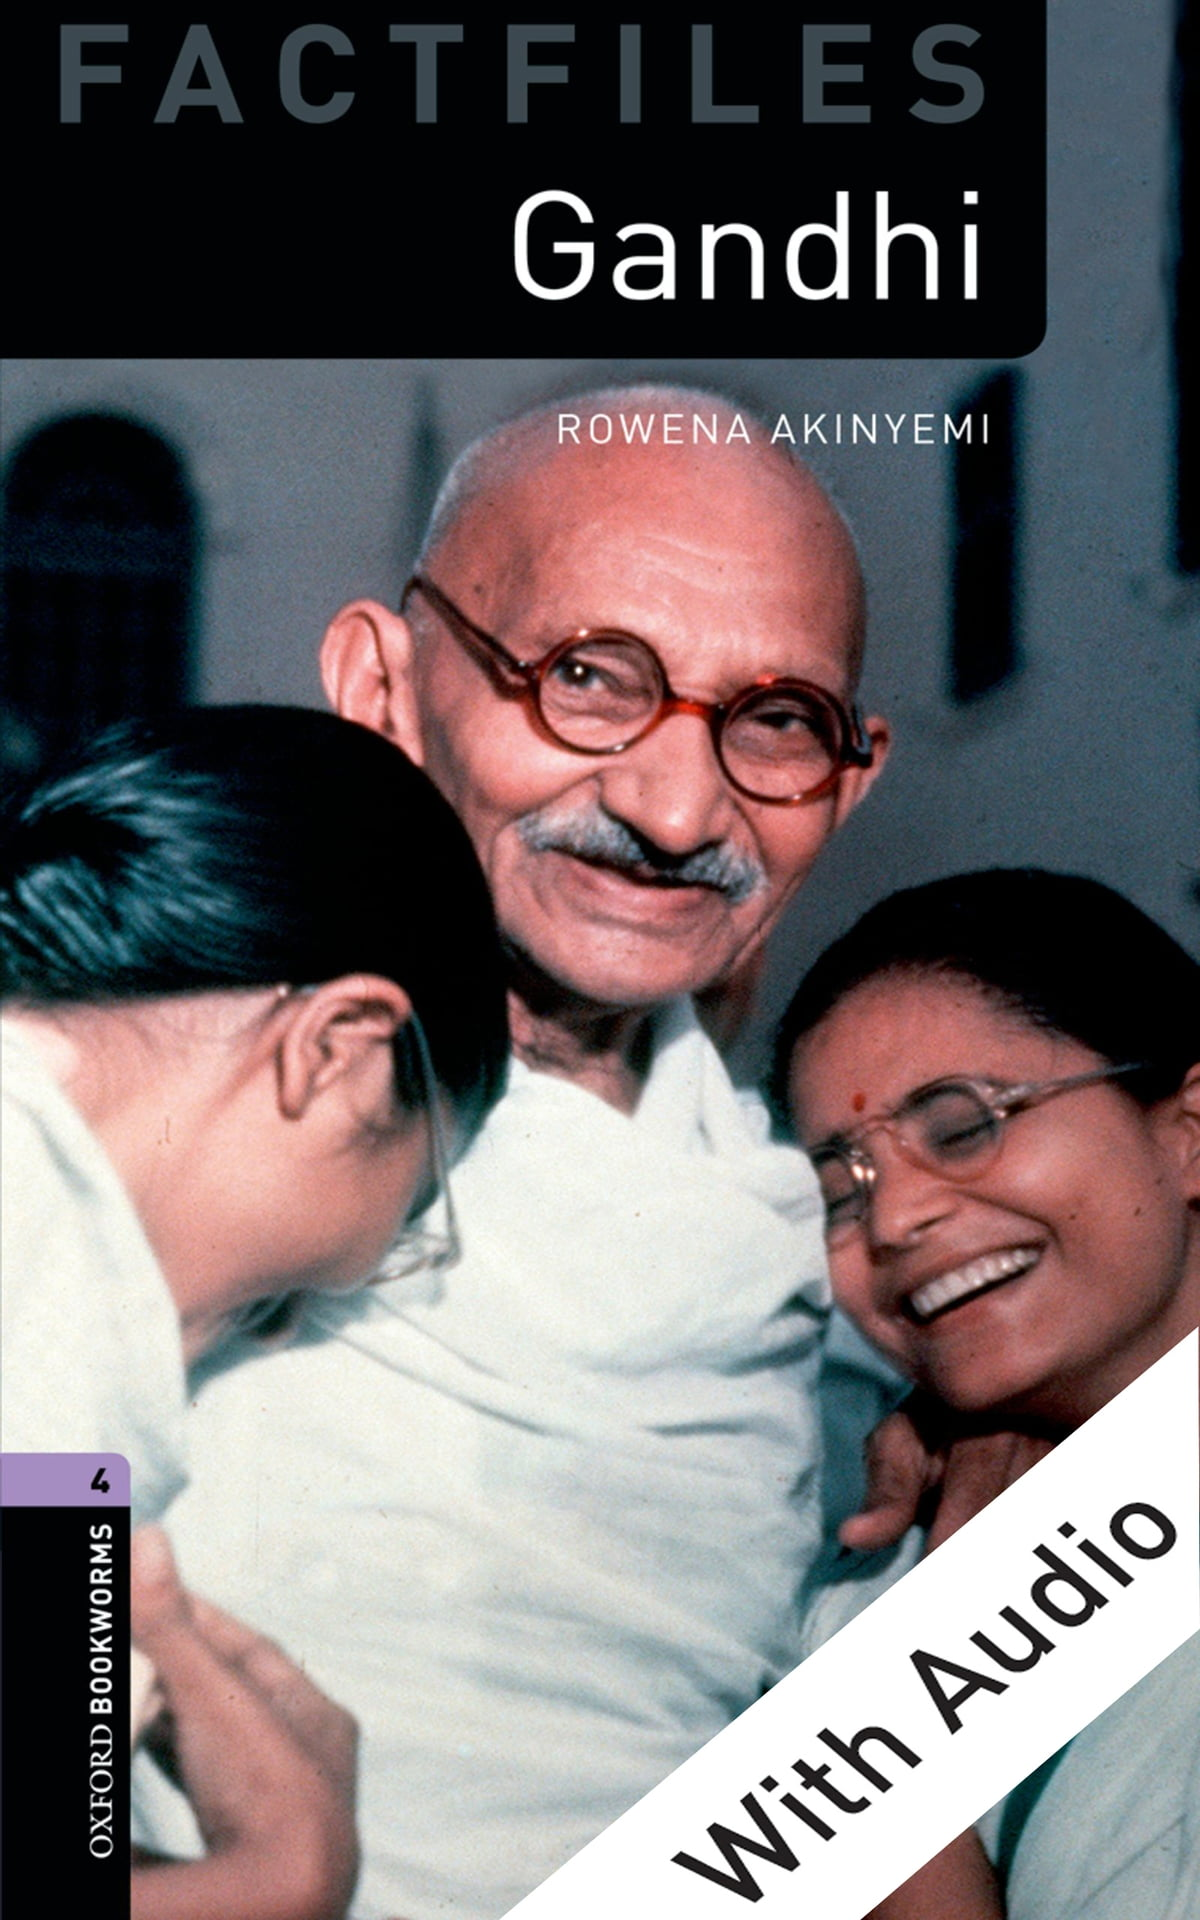 Oxford Bookworms Library Gandhi With Audio Level 4 Factfiles Oxford Bookworms